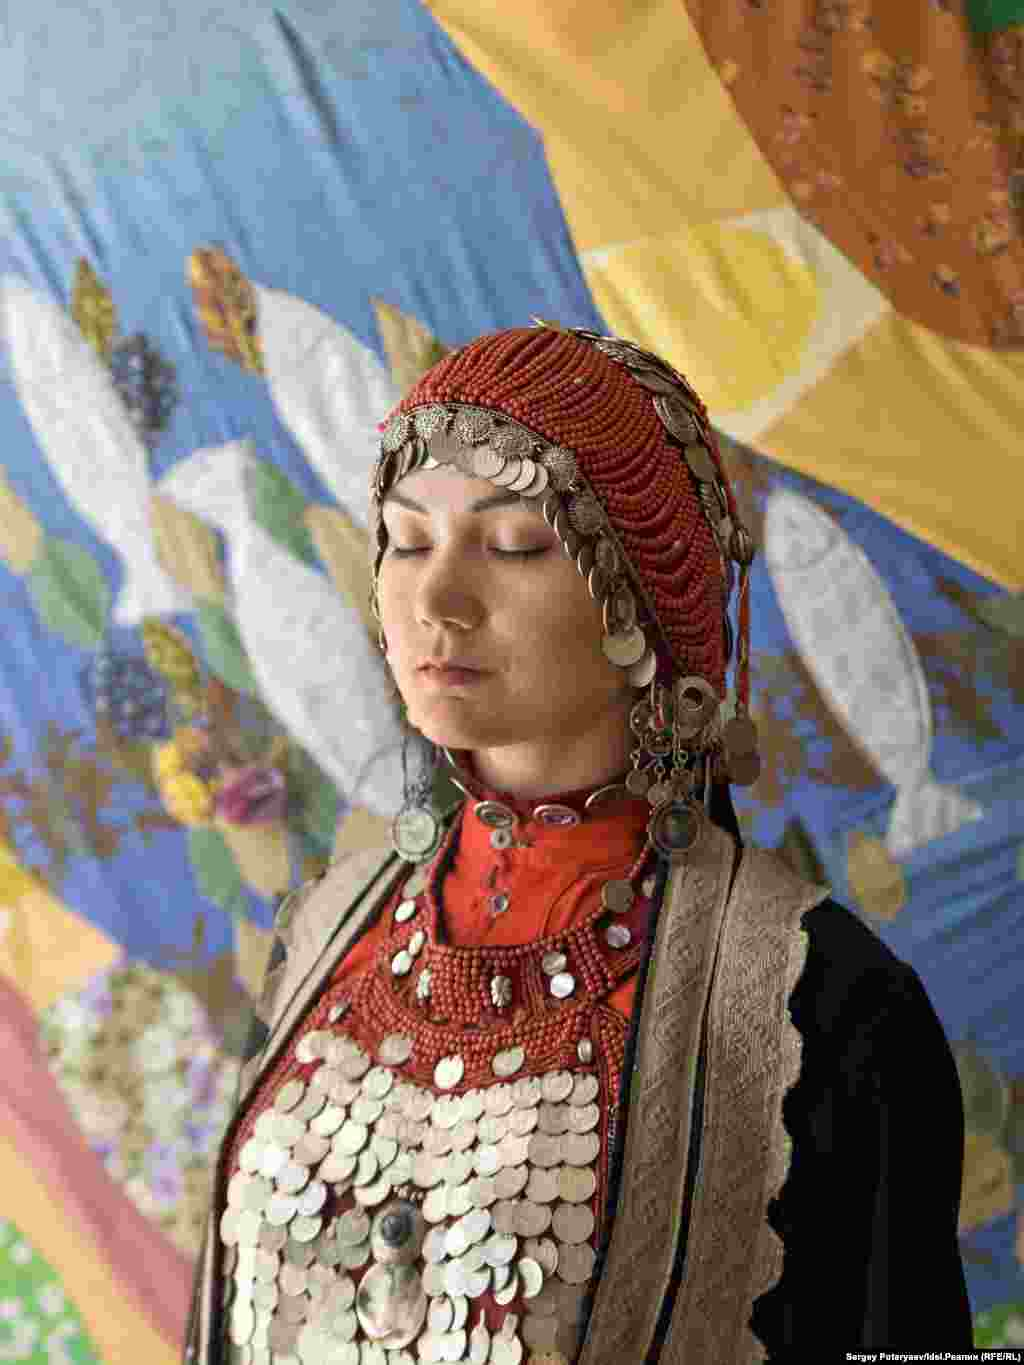 "Regina 29 years old, art historian ""I think that the goal for a Bashkir girl is to be worthy of her nation and its history. It's important, while possessing gadgets, to build traditions into modern realities. I have made the breastplate necklace myself, and I plan to use ethnic patterns in my wardrobe further on."""